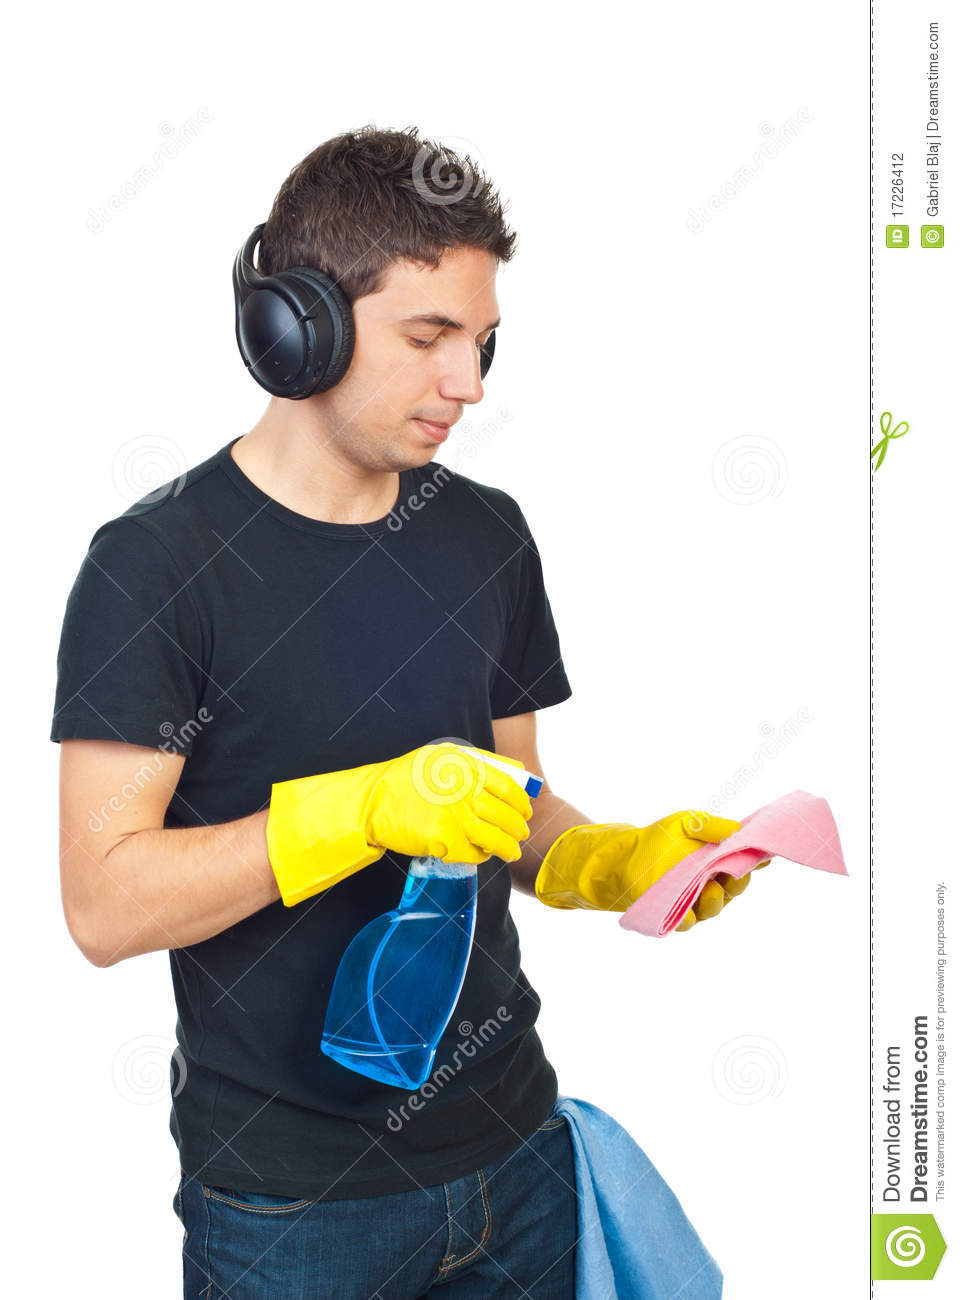 how to clean headphones properly